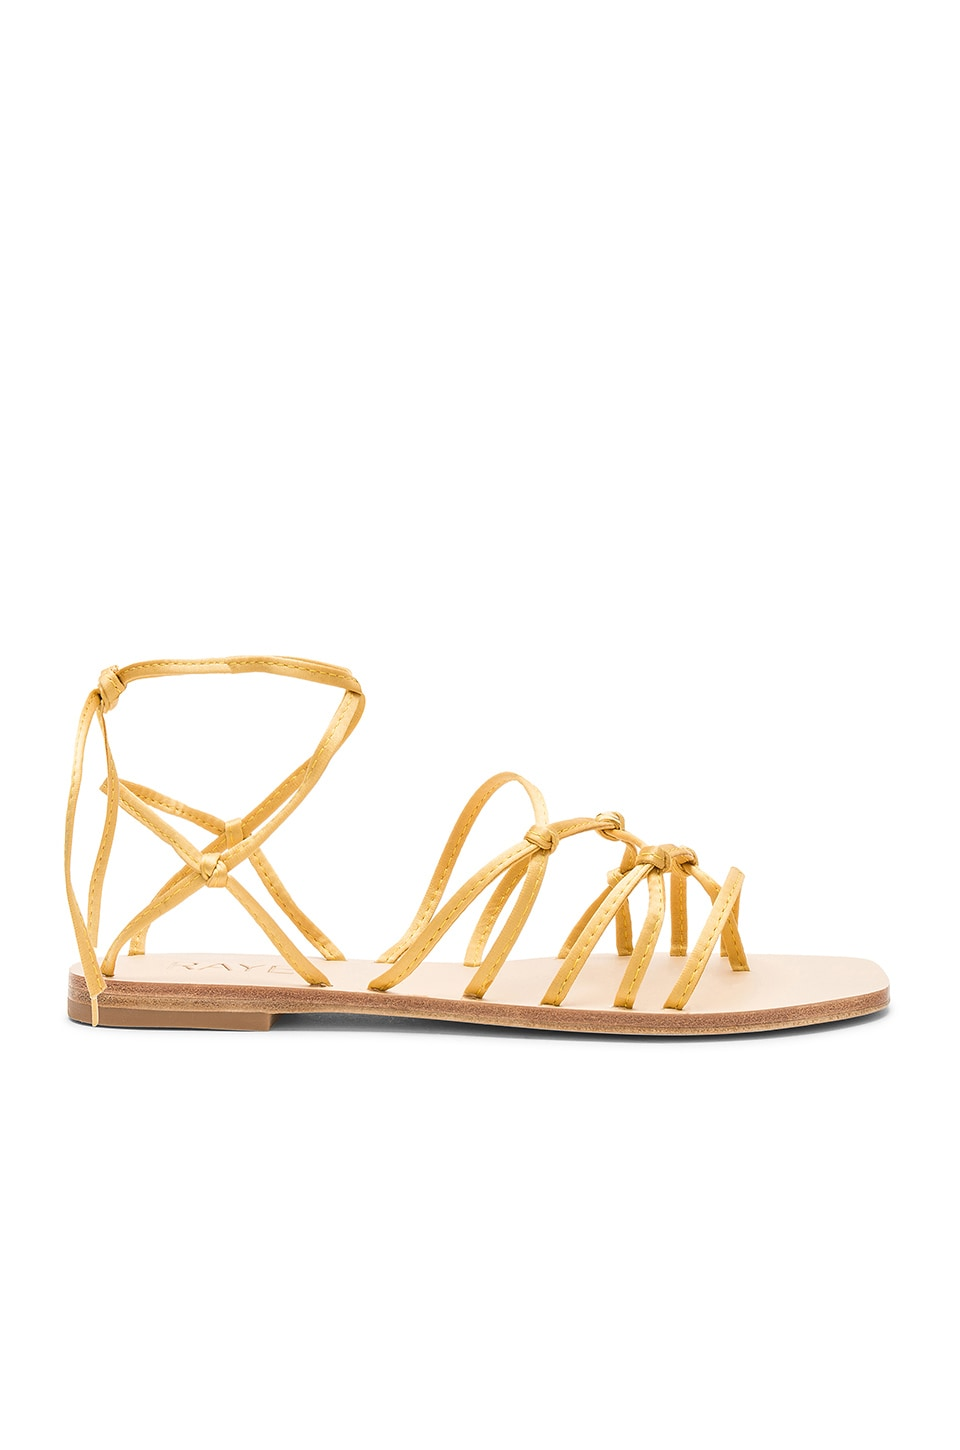 RAYE Tilly Sandal in Gold